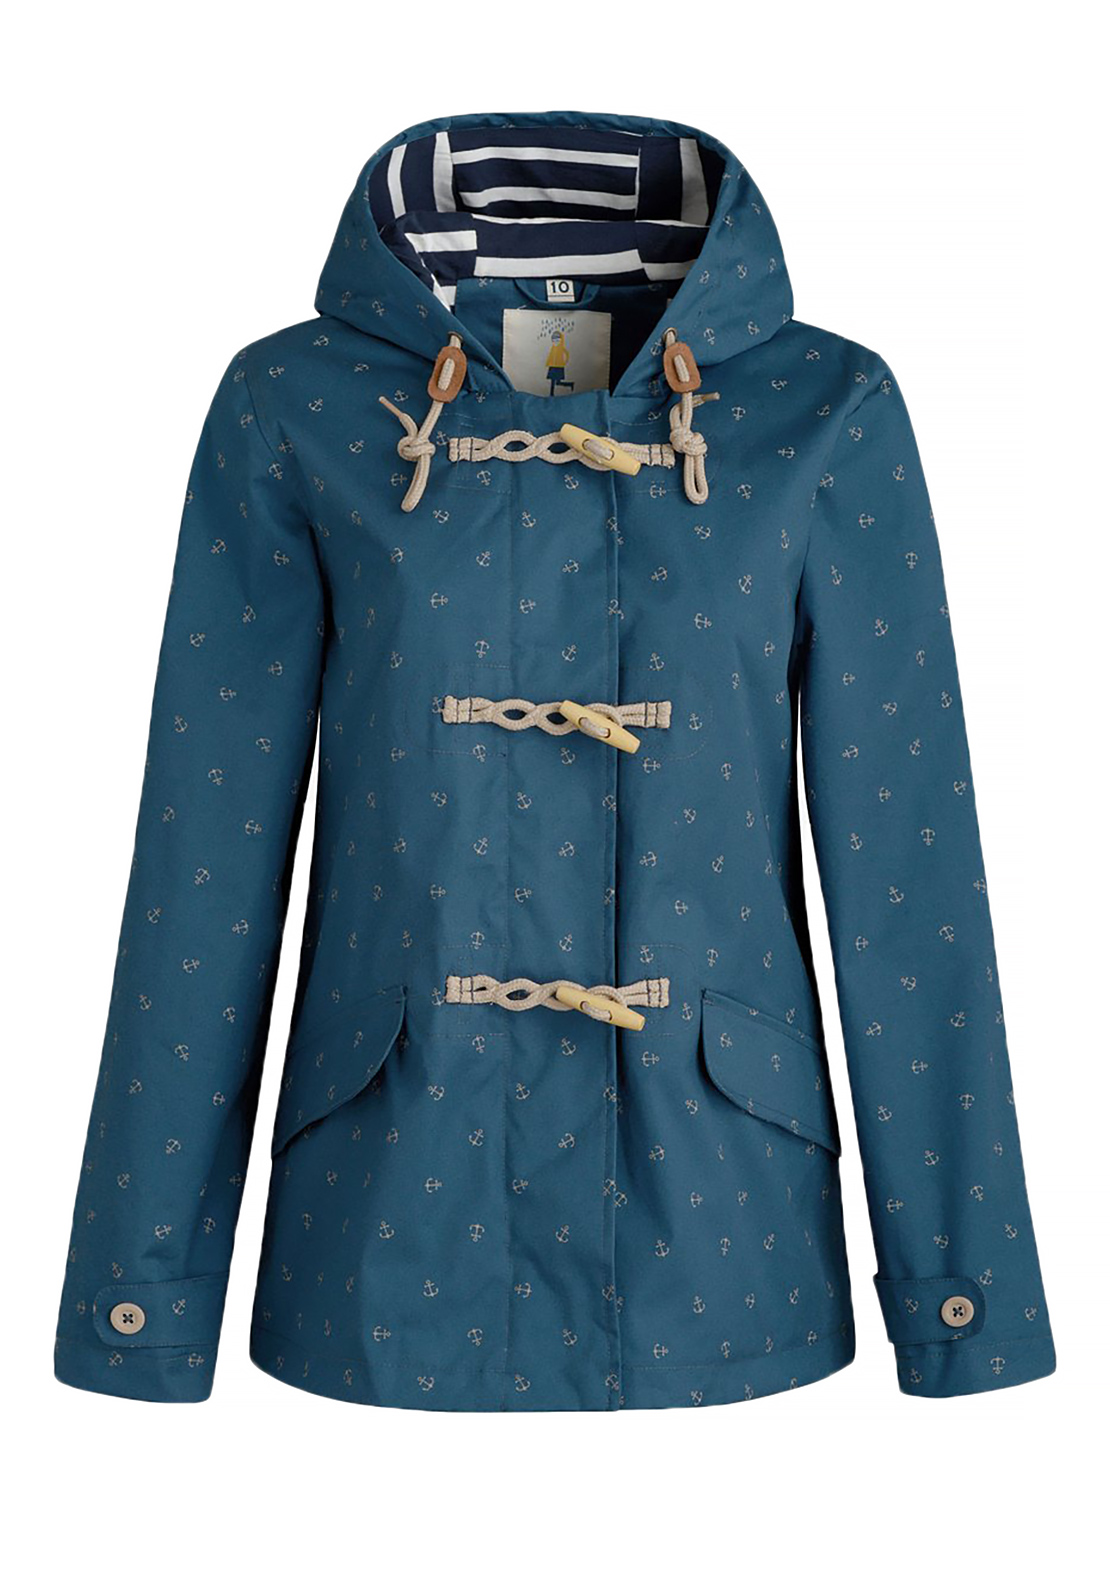 Seasalt Patterned Seafolly Jacket, Scattered Anchor Squall